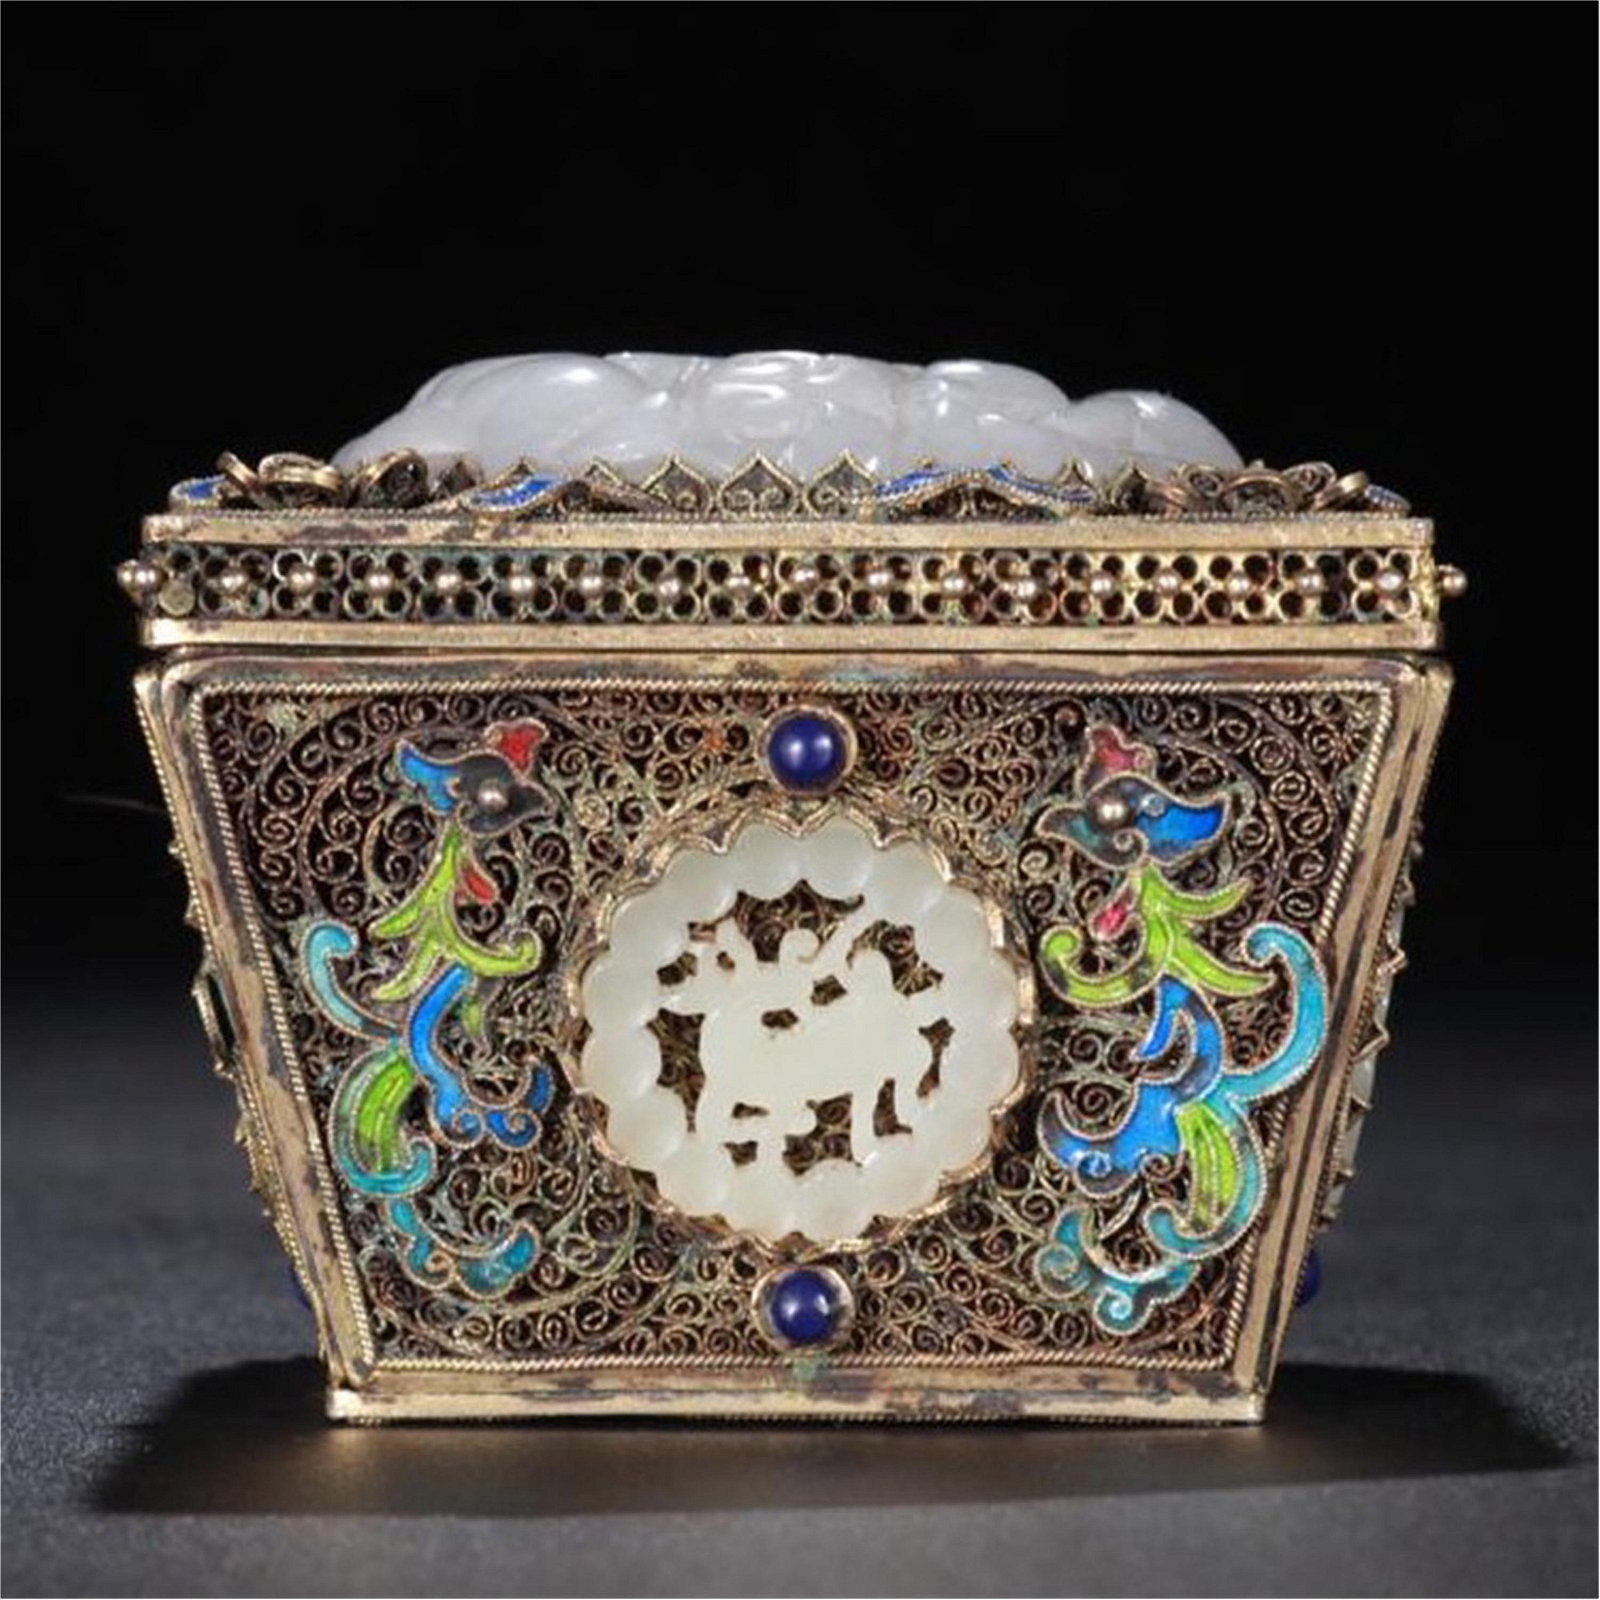 CHINESE WHITE JADE PLAQUE INLAID SILVER ENAMEL SQUARE